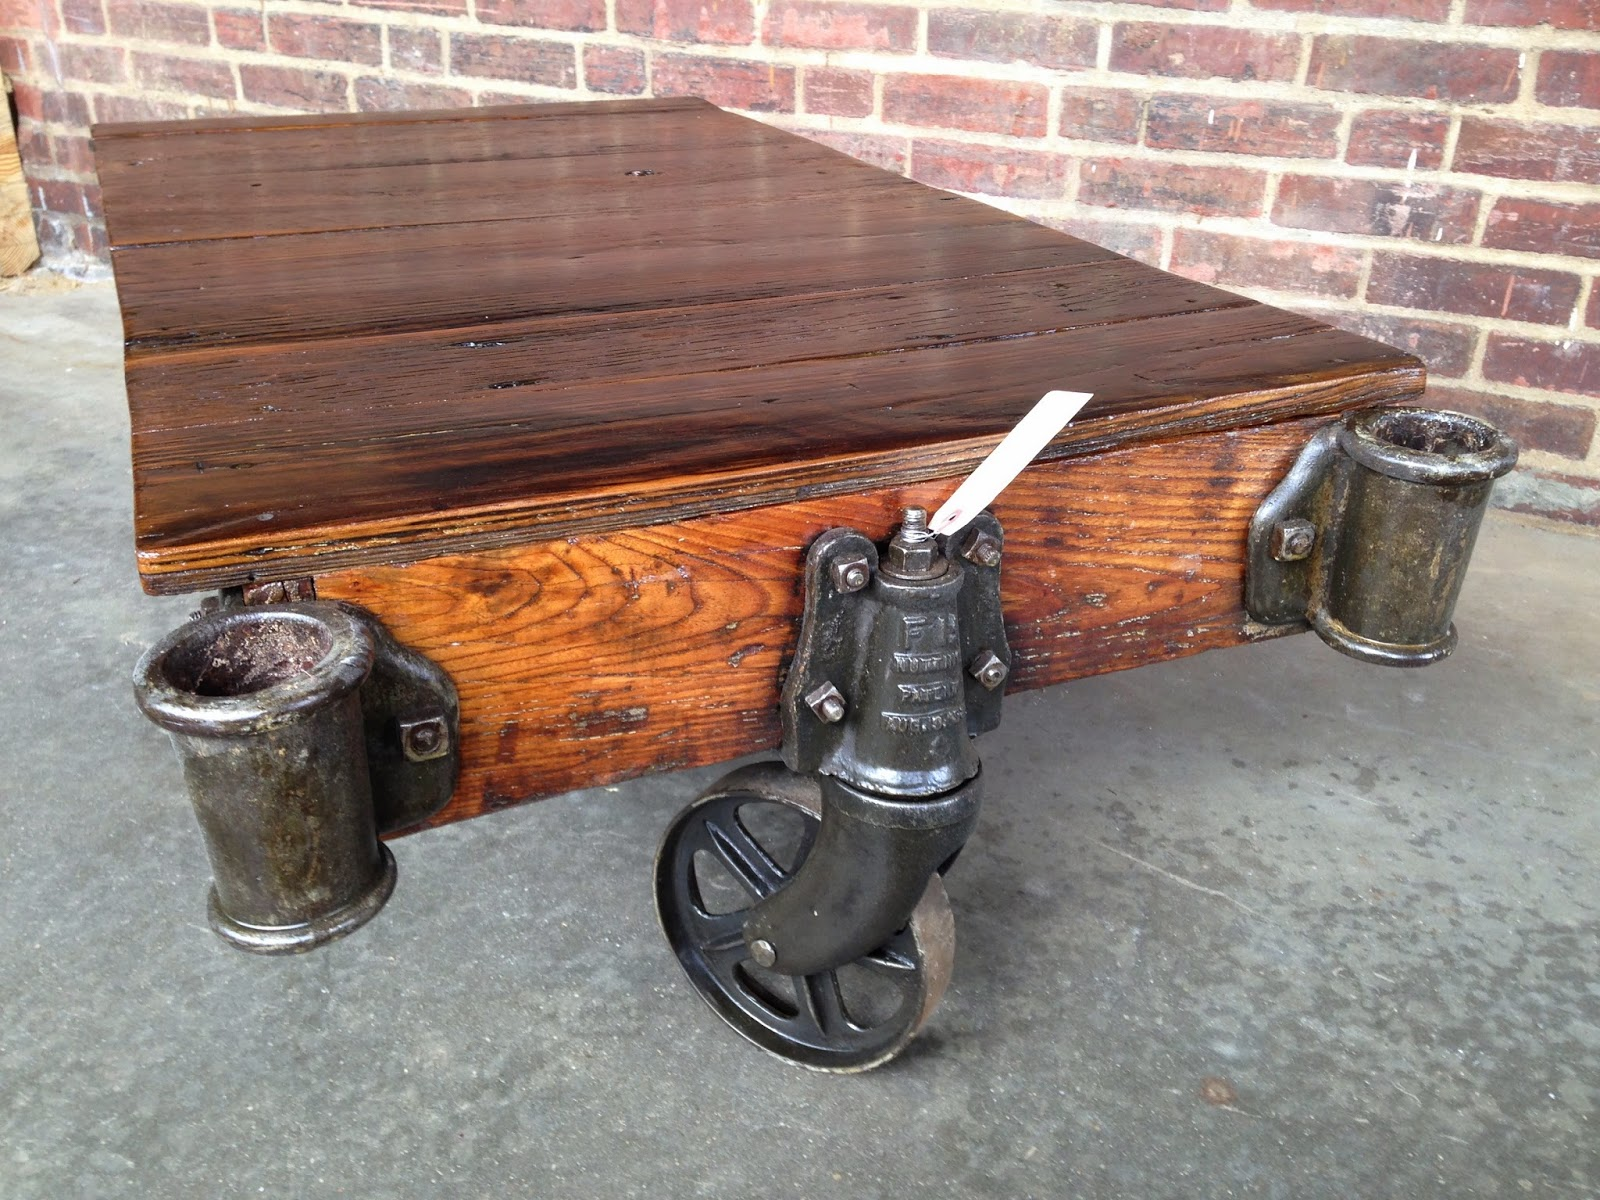 Nutting cart refurbished table